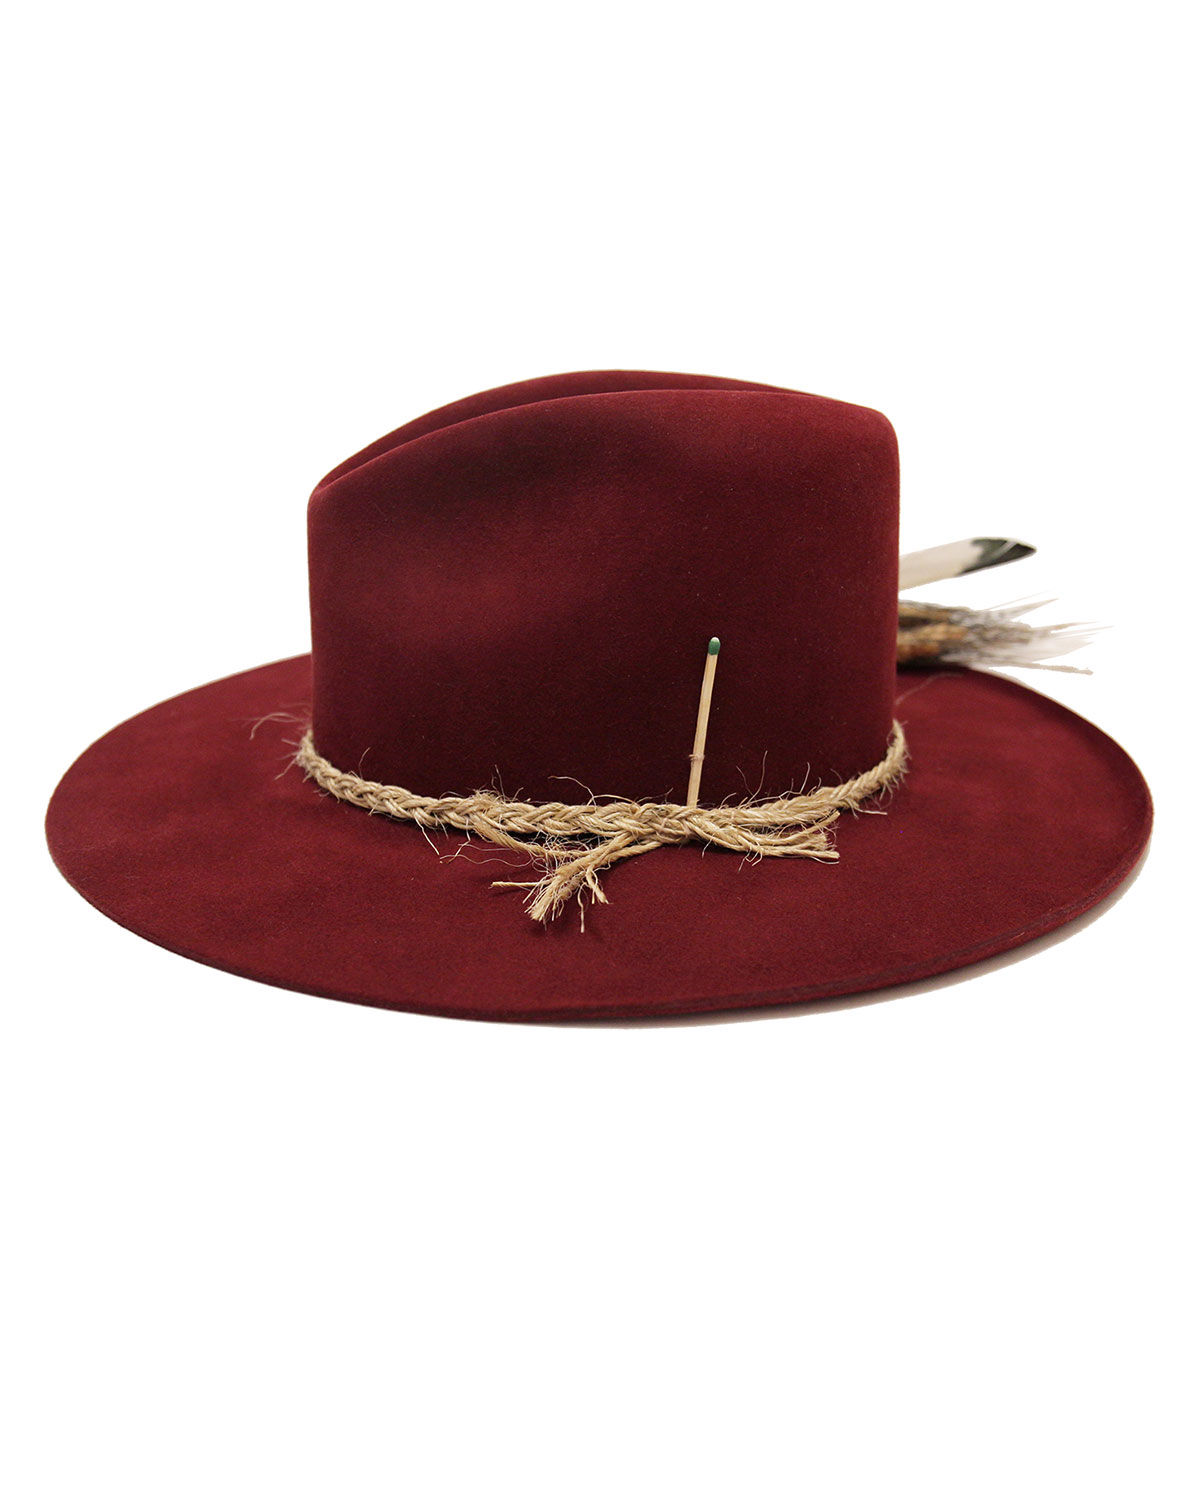 Nick Fouquet Scarlett Beaver Felt Fedora Hat w/ Feather Trim